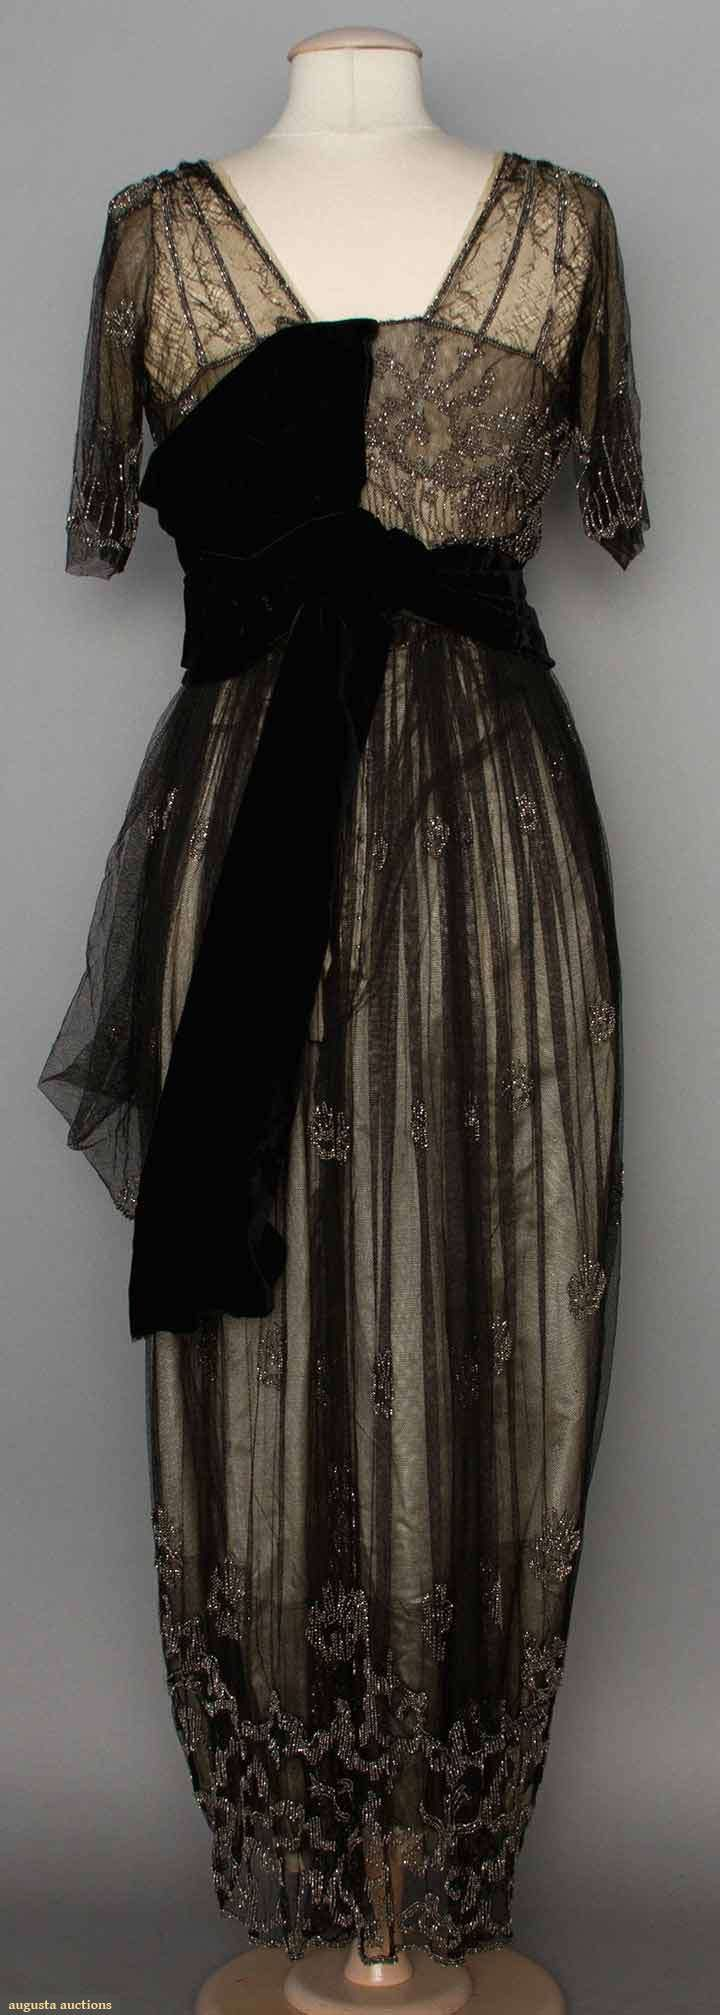 """BEADED EVENING GOWN, 1911-1912 